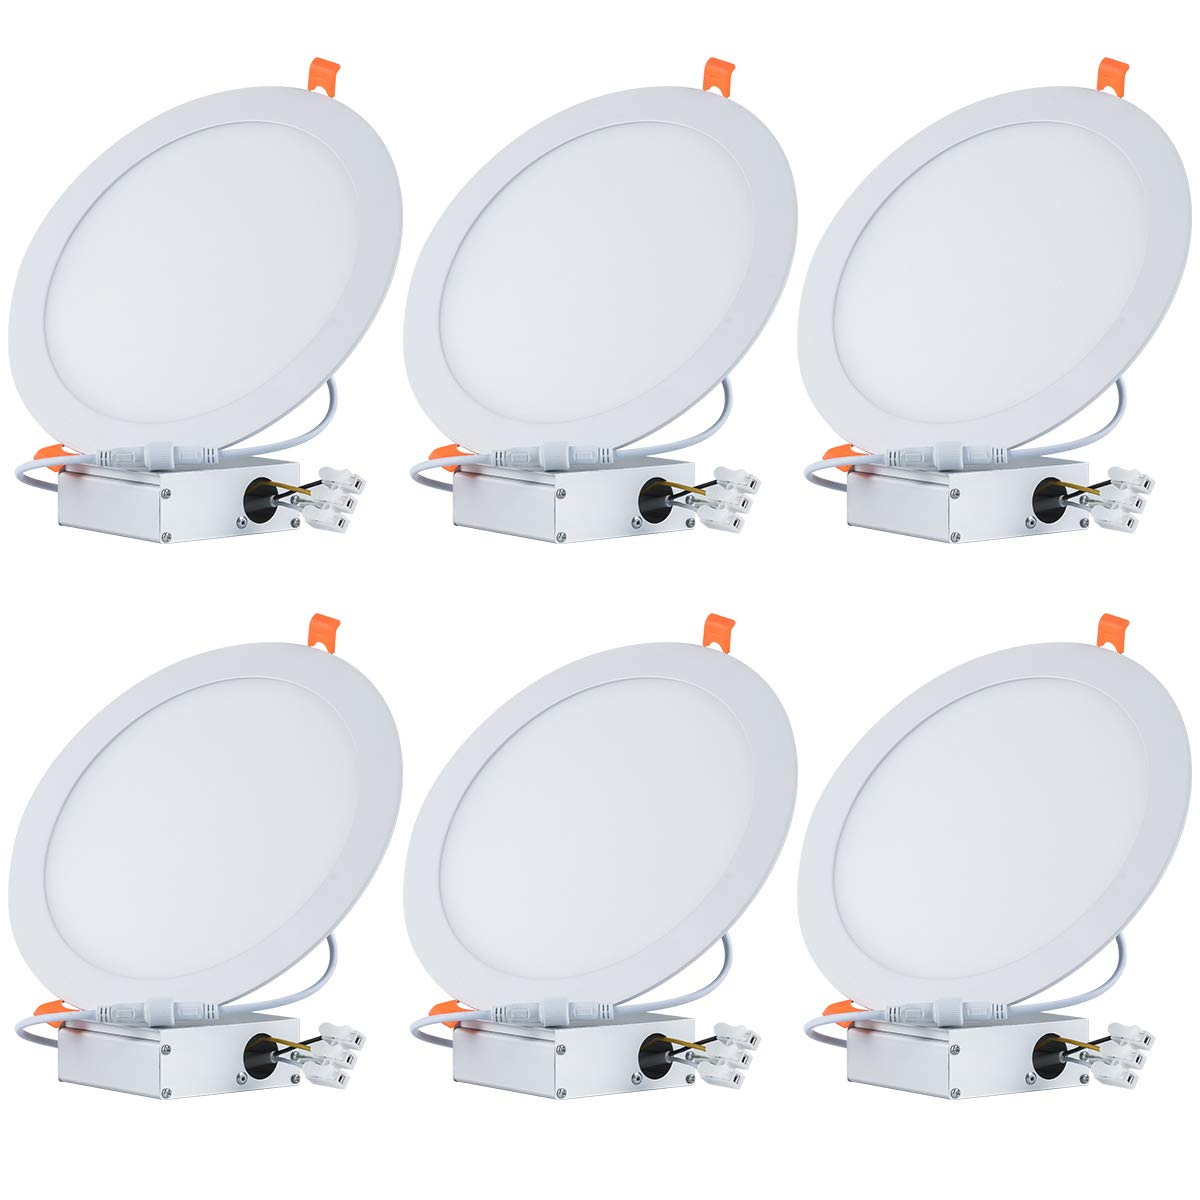 Tonnled 18W 8 Inch Ultra-Thin Recessed Ceiling Light with Junction Box, 6000K Daylight, 1350lm, Not Dimmable Recessed Downlight, Easy Installation, Home, Office, Commercial Lighting, Pack of 6